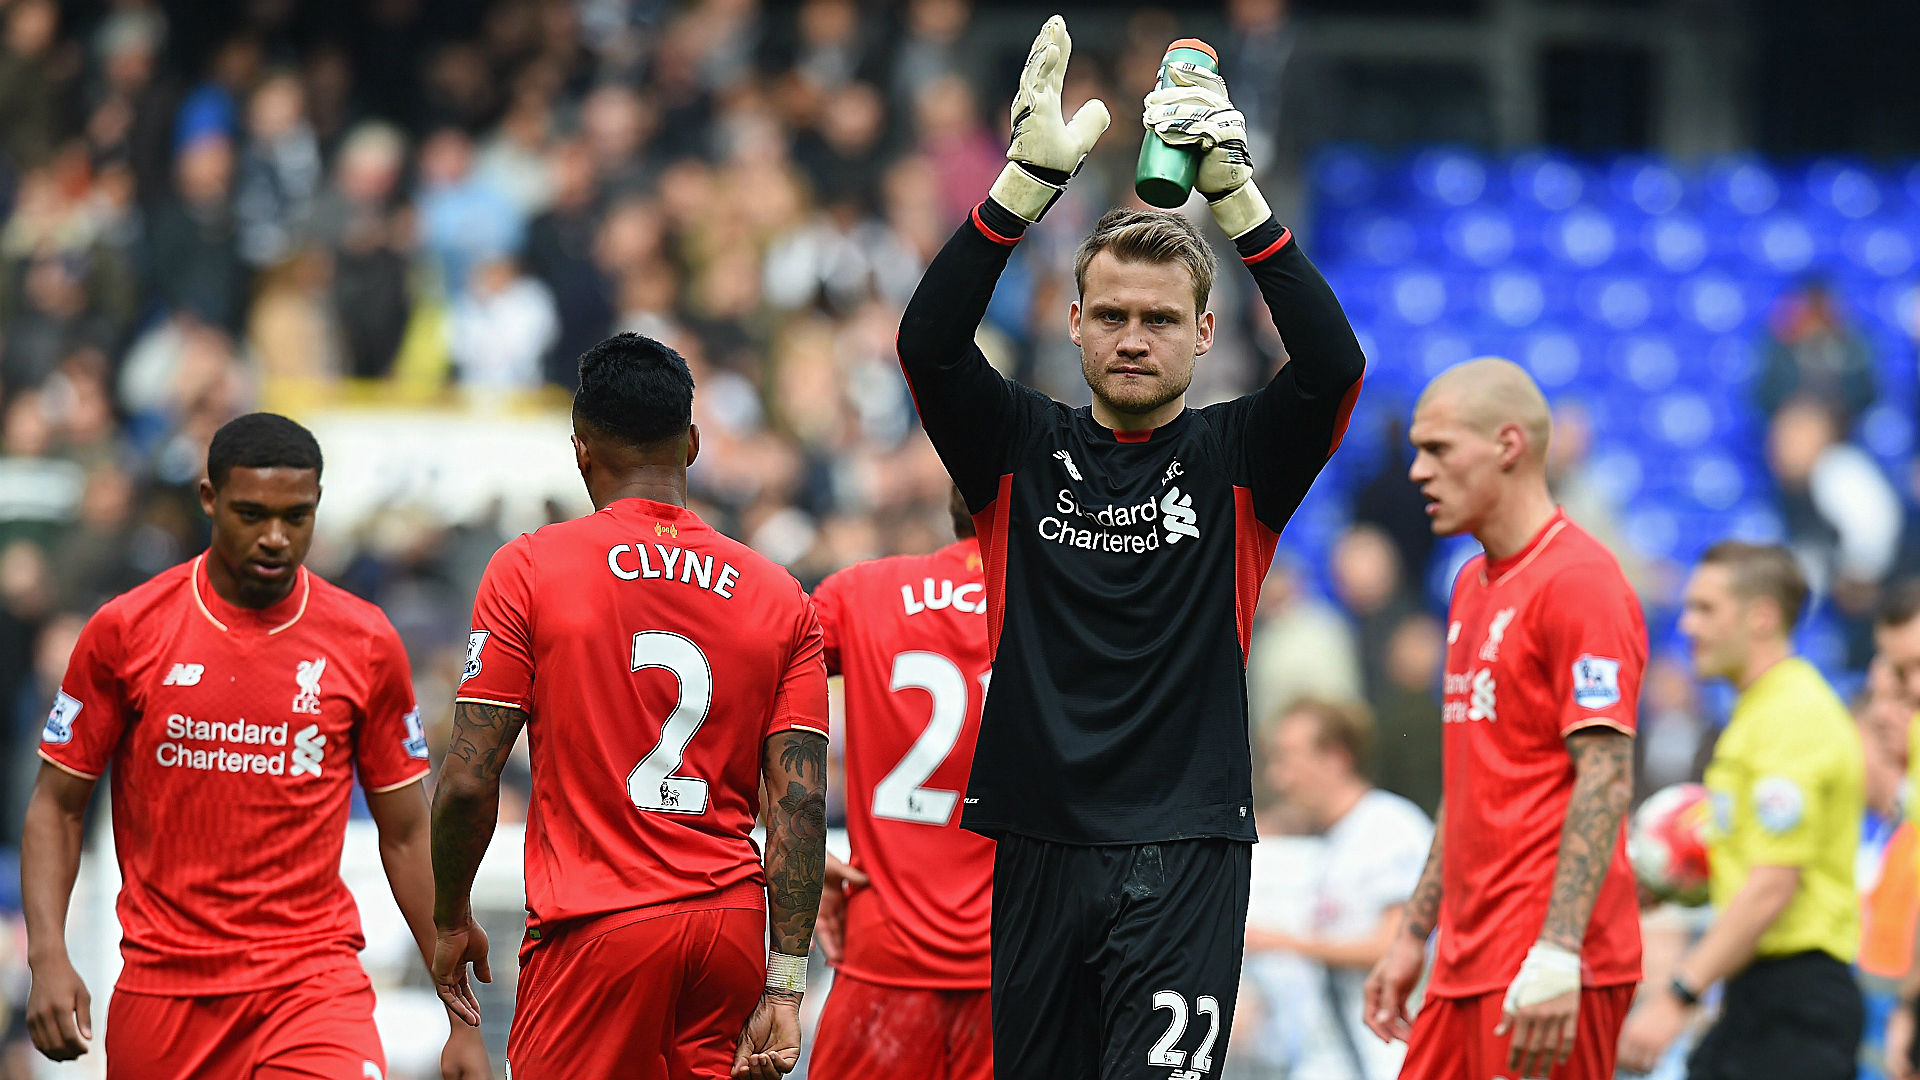 Chelsea vs. Liverpool odds and pick – Defense new emphasis for Reds